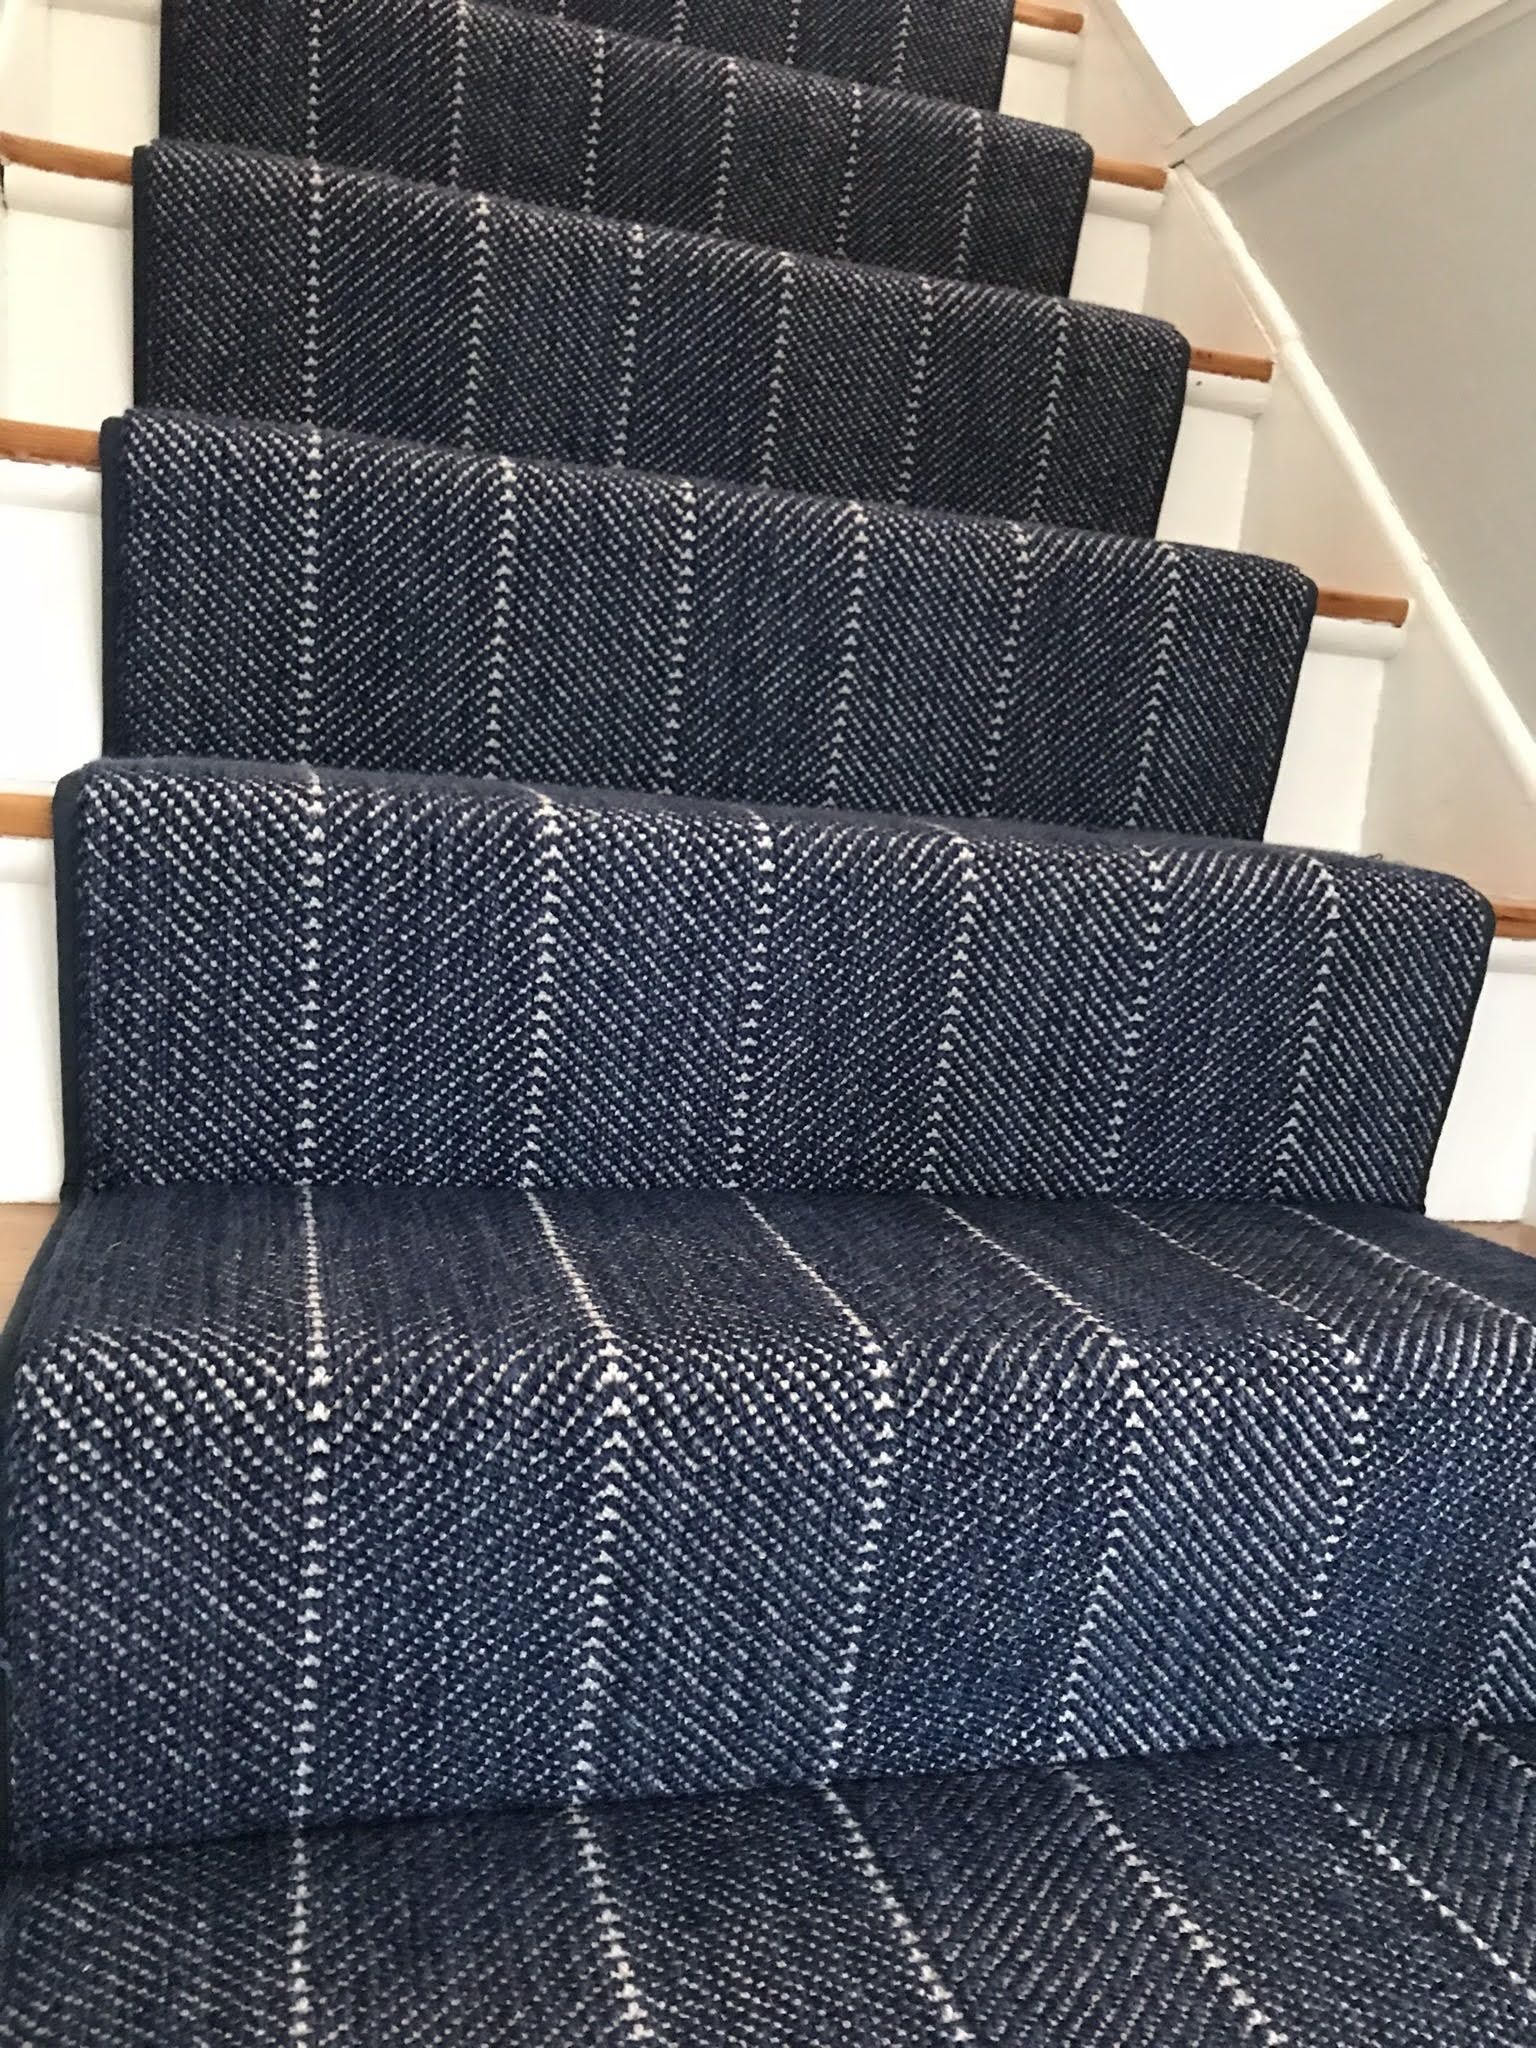 A New Herringbone Stair Runner Install Done Over In Halifax Ma Interested In How To Get Your Stairs Done Drop Grey Carpet Bedroom Stair Runner Carpet Stairs